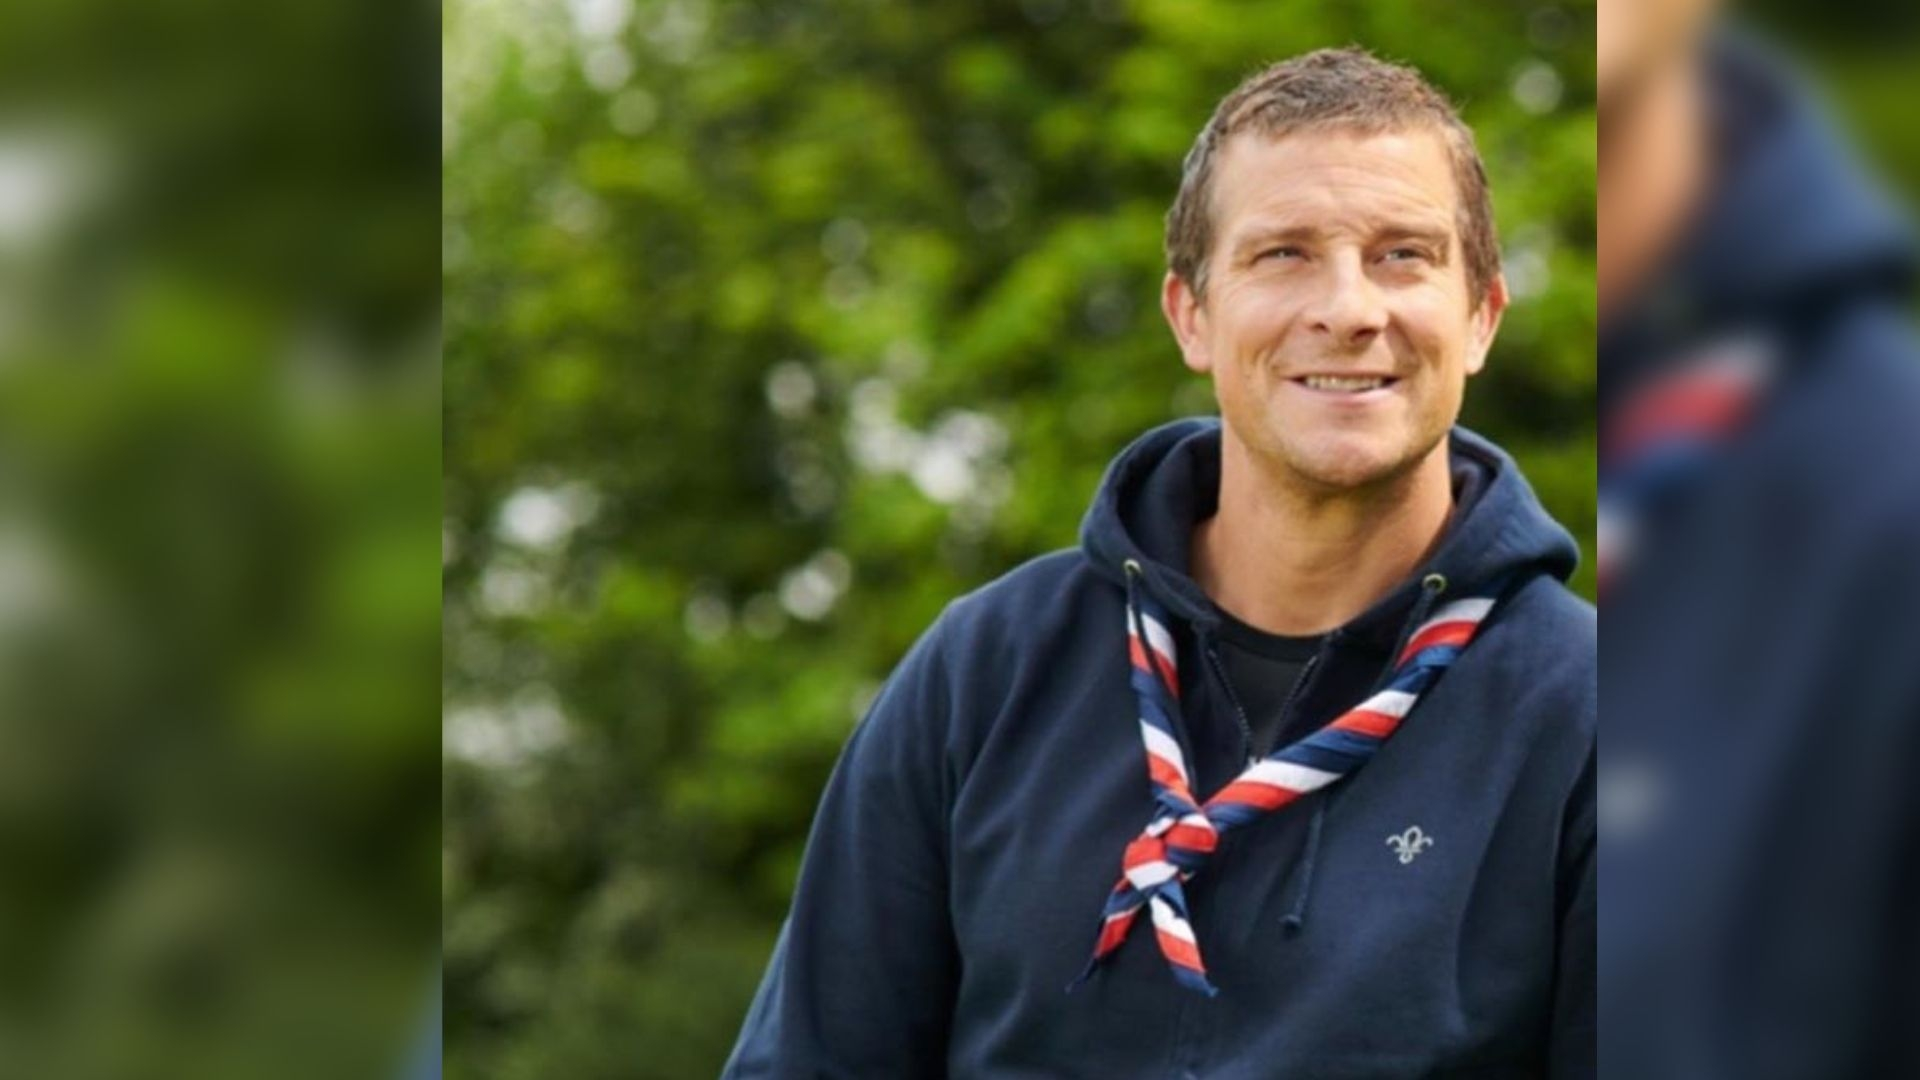 Bear Grylls Suffers Life-Threatening Allergy on Sets of New Show